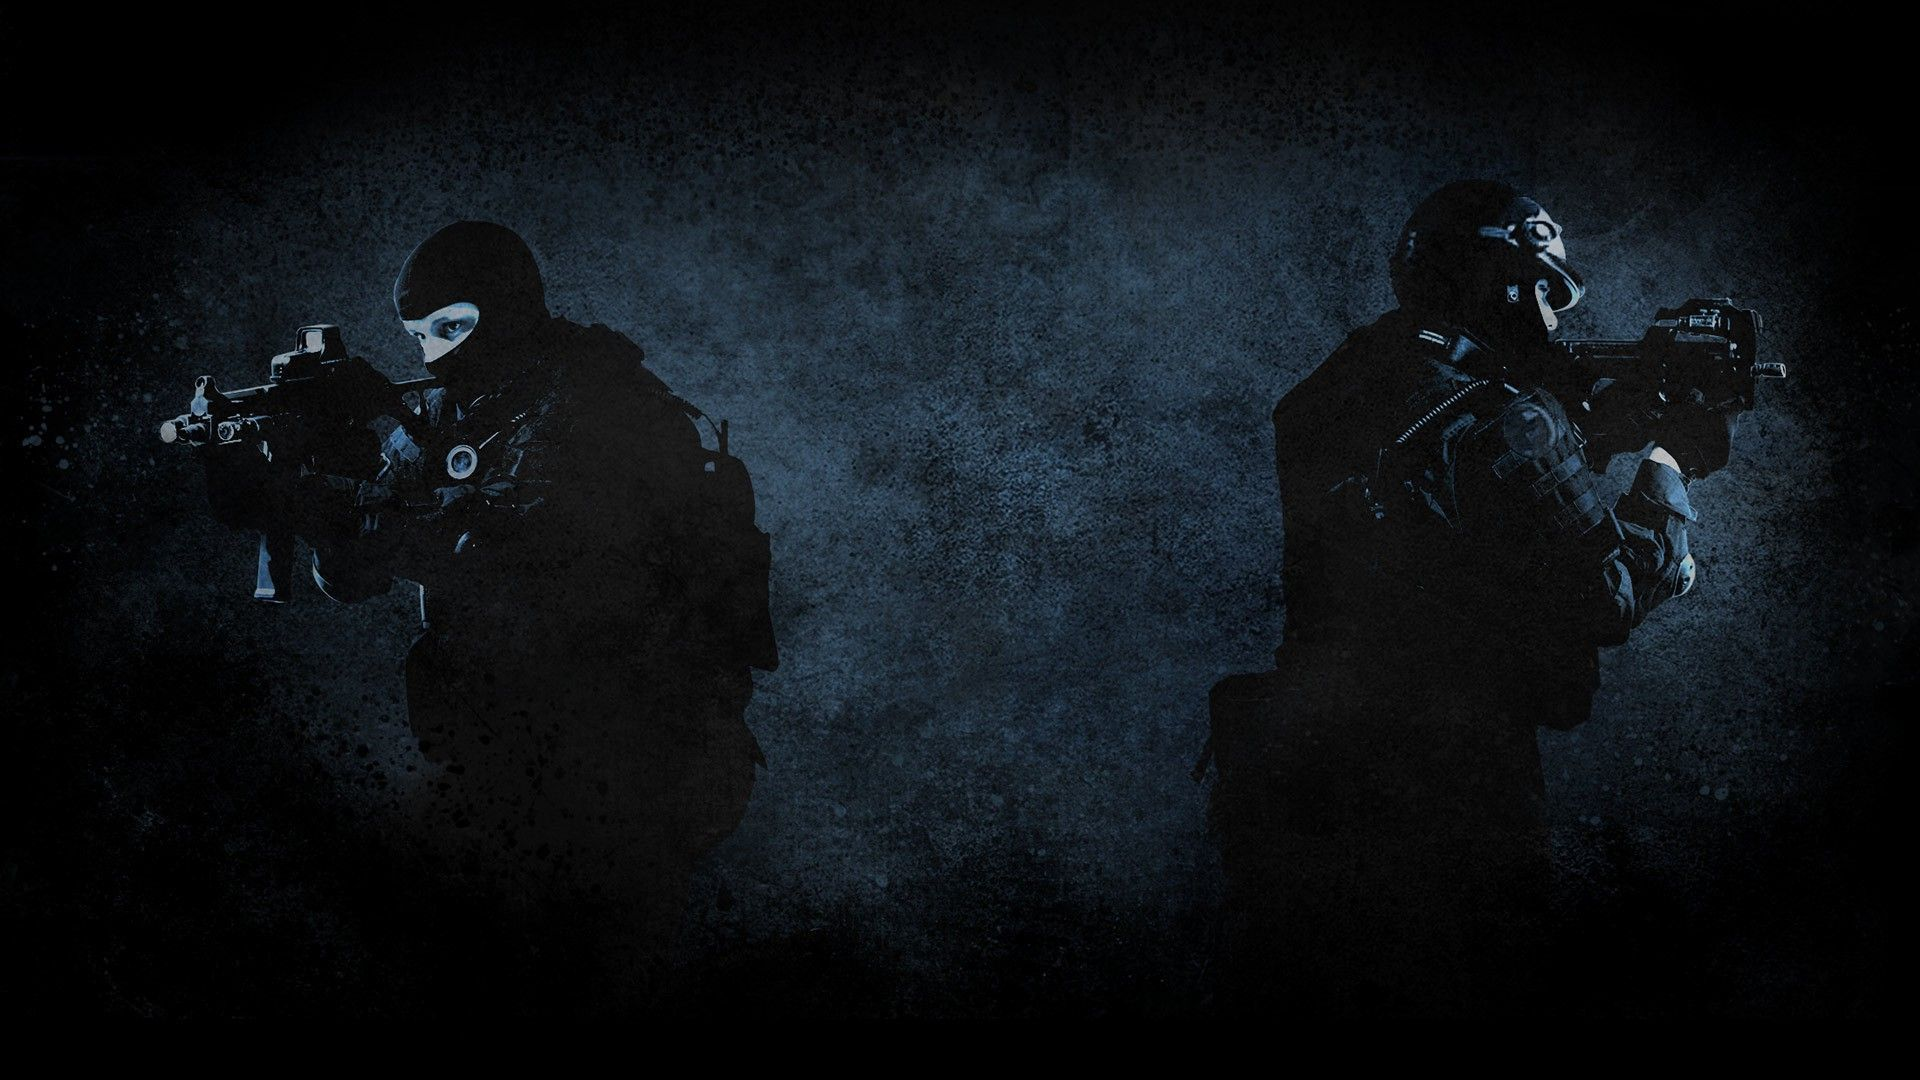 Counter Strike Wallpaper 1920x1080